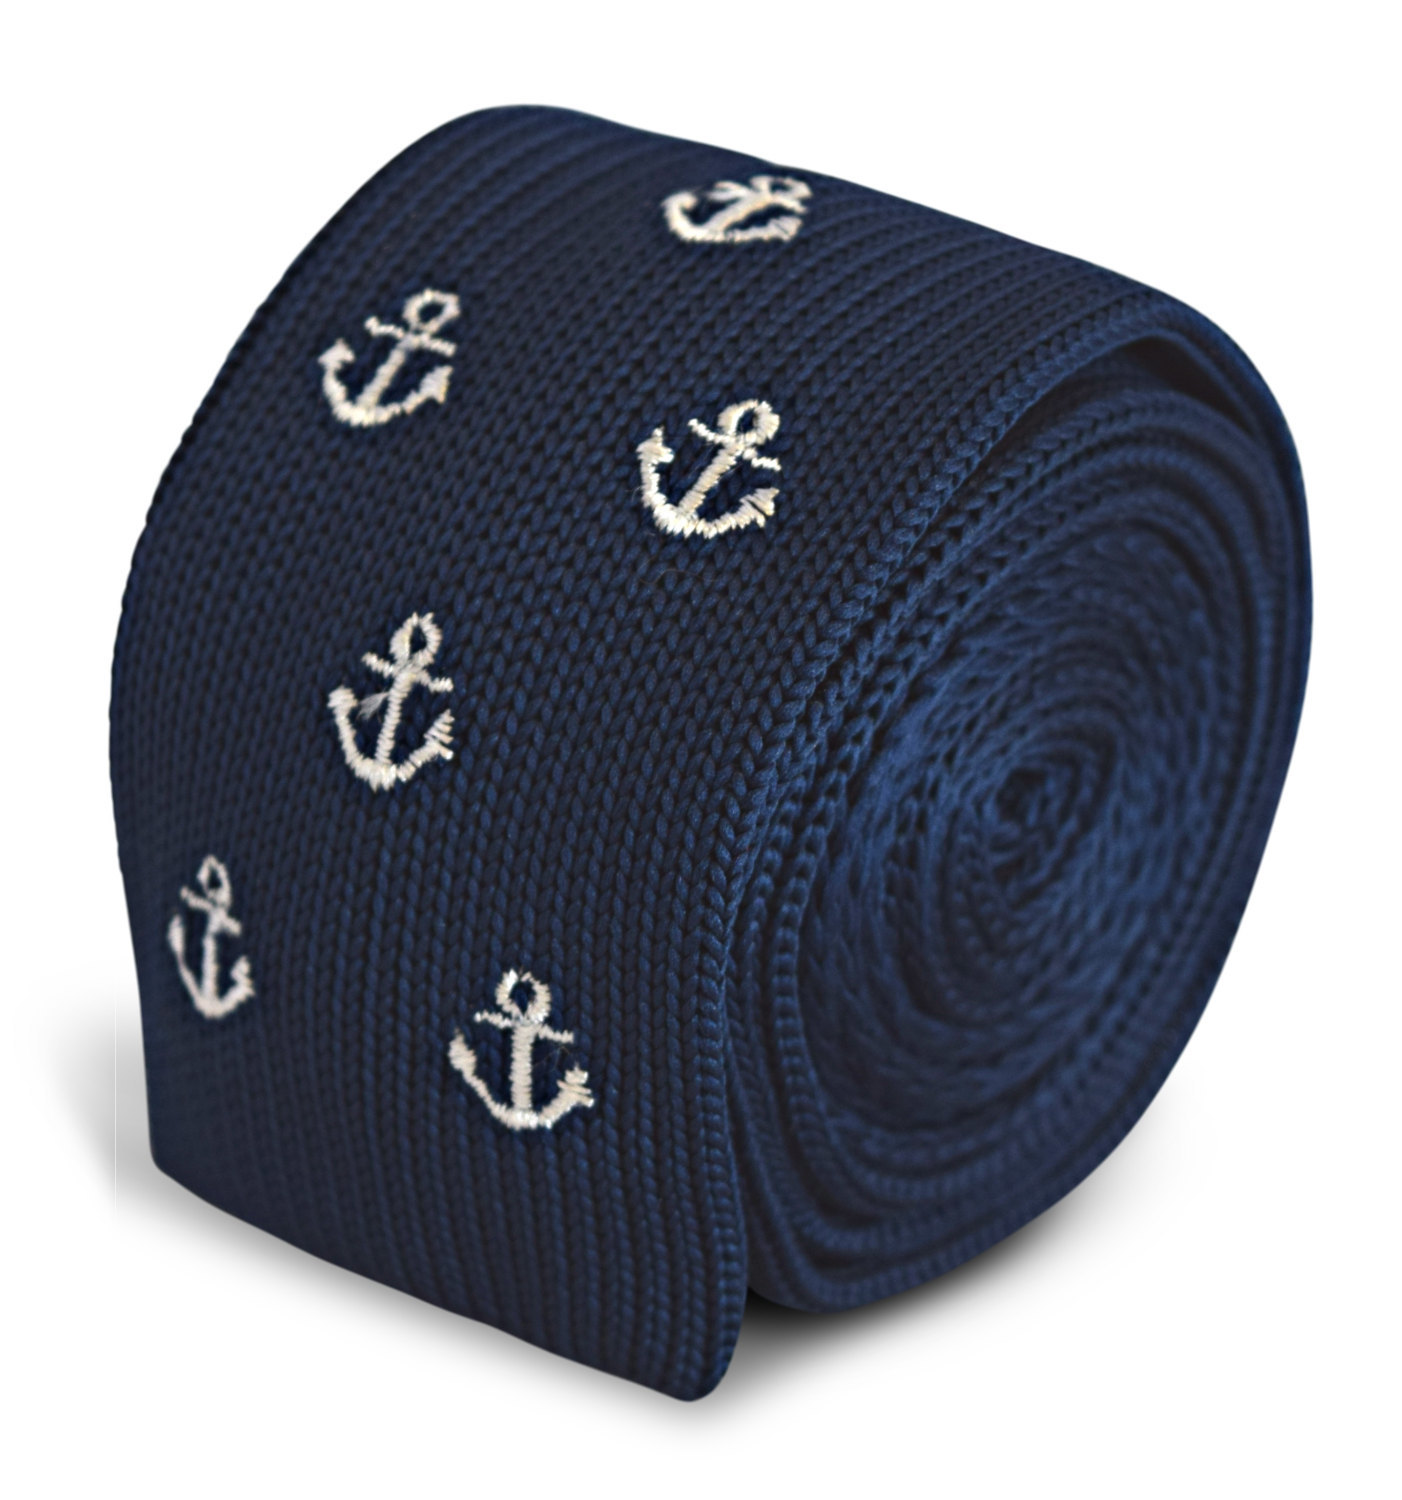 navy knitted skinny tie with anchor design by Frederick Thomas FT3296